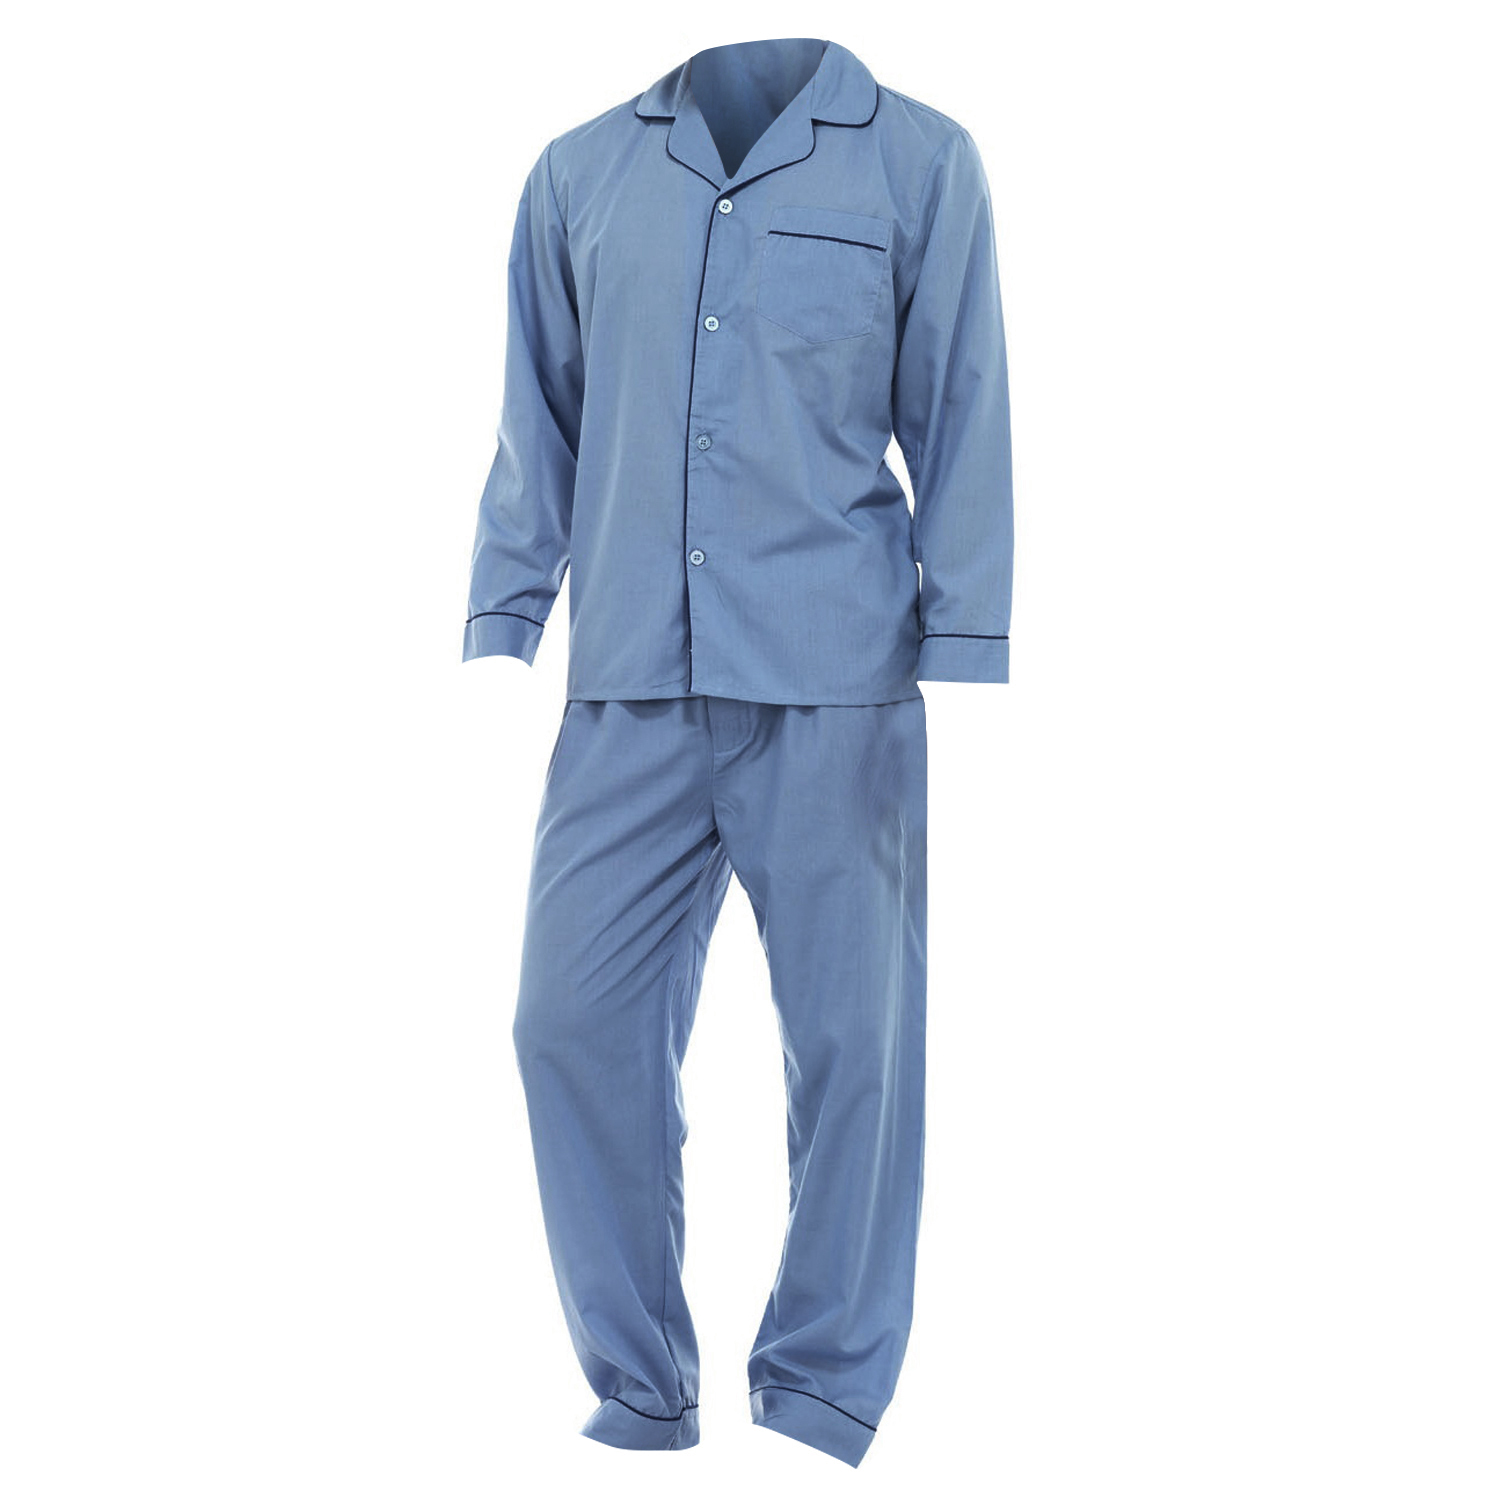 John Ashford two piece men's pajama set features long sleeve top and long pants Long-sleeved top features button-front entry with chest pocket Pants feature snap front adjustable waistband Cuffed sleeve Button up top Available in royal blue, navy blue, light blue, and red color options Click here to view our men's sizing guide.